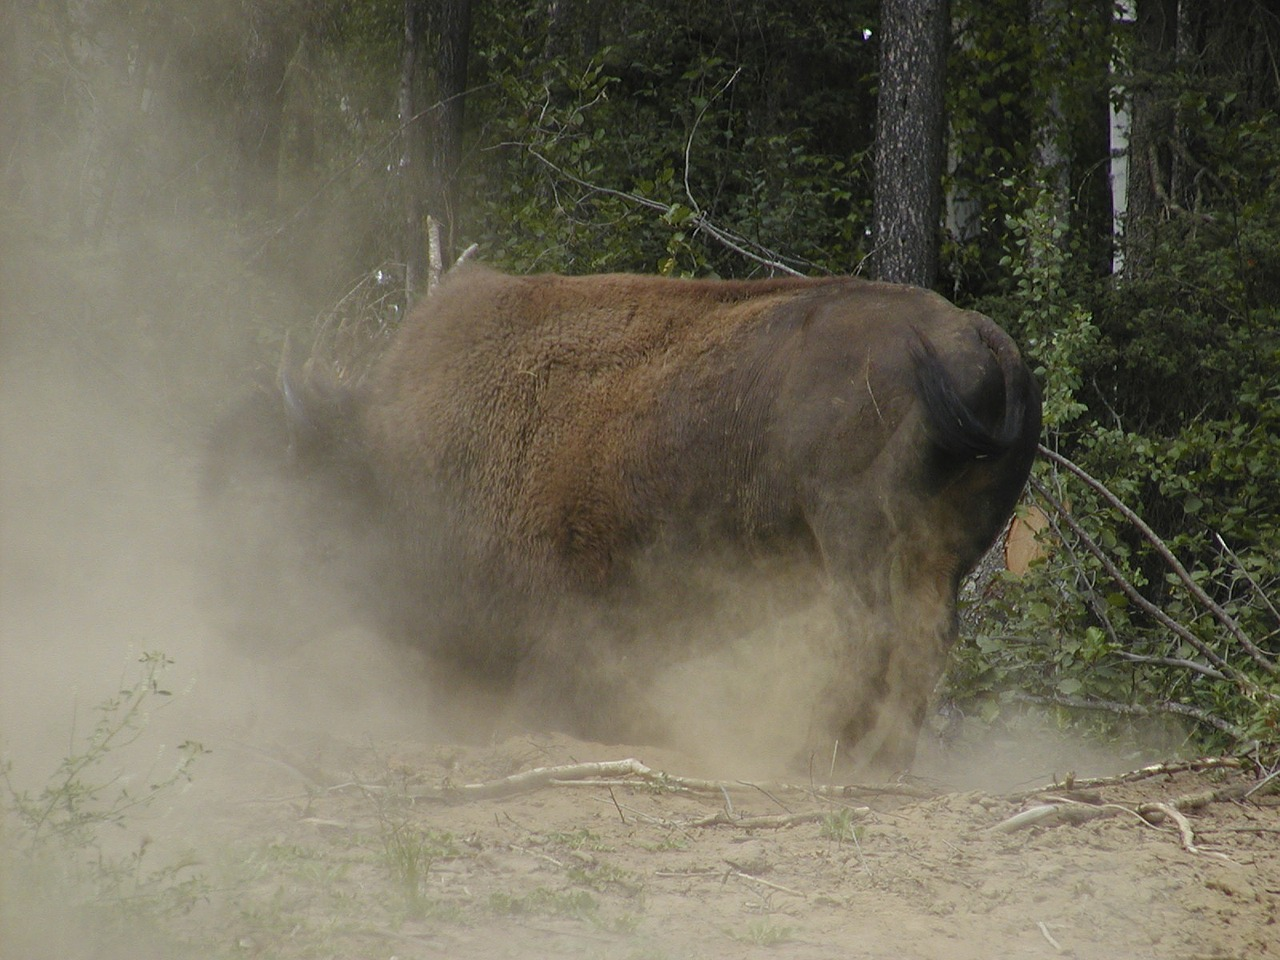 bison yukon dusty free photo